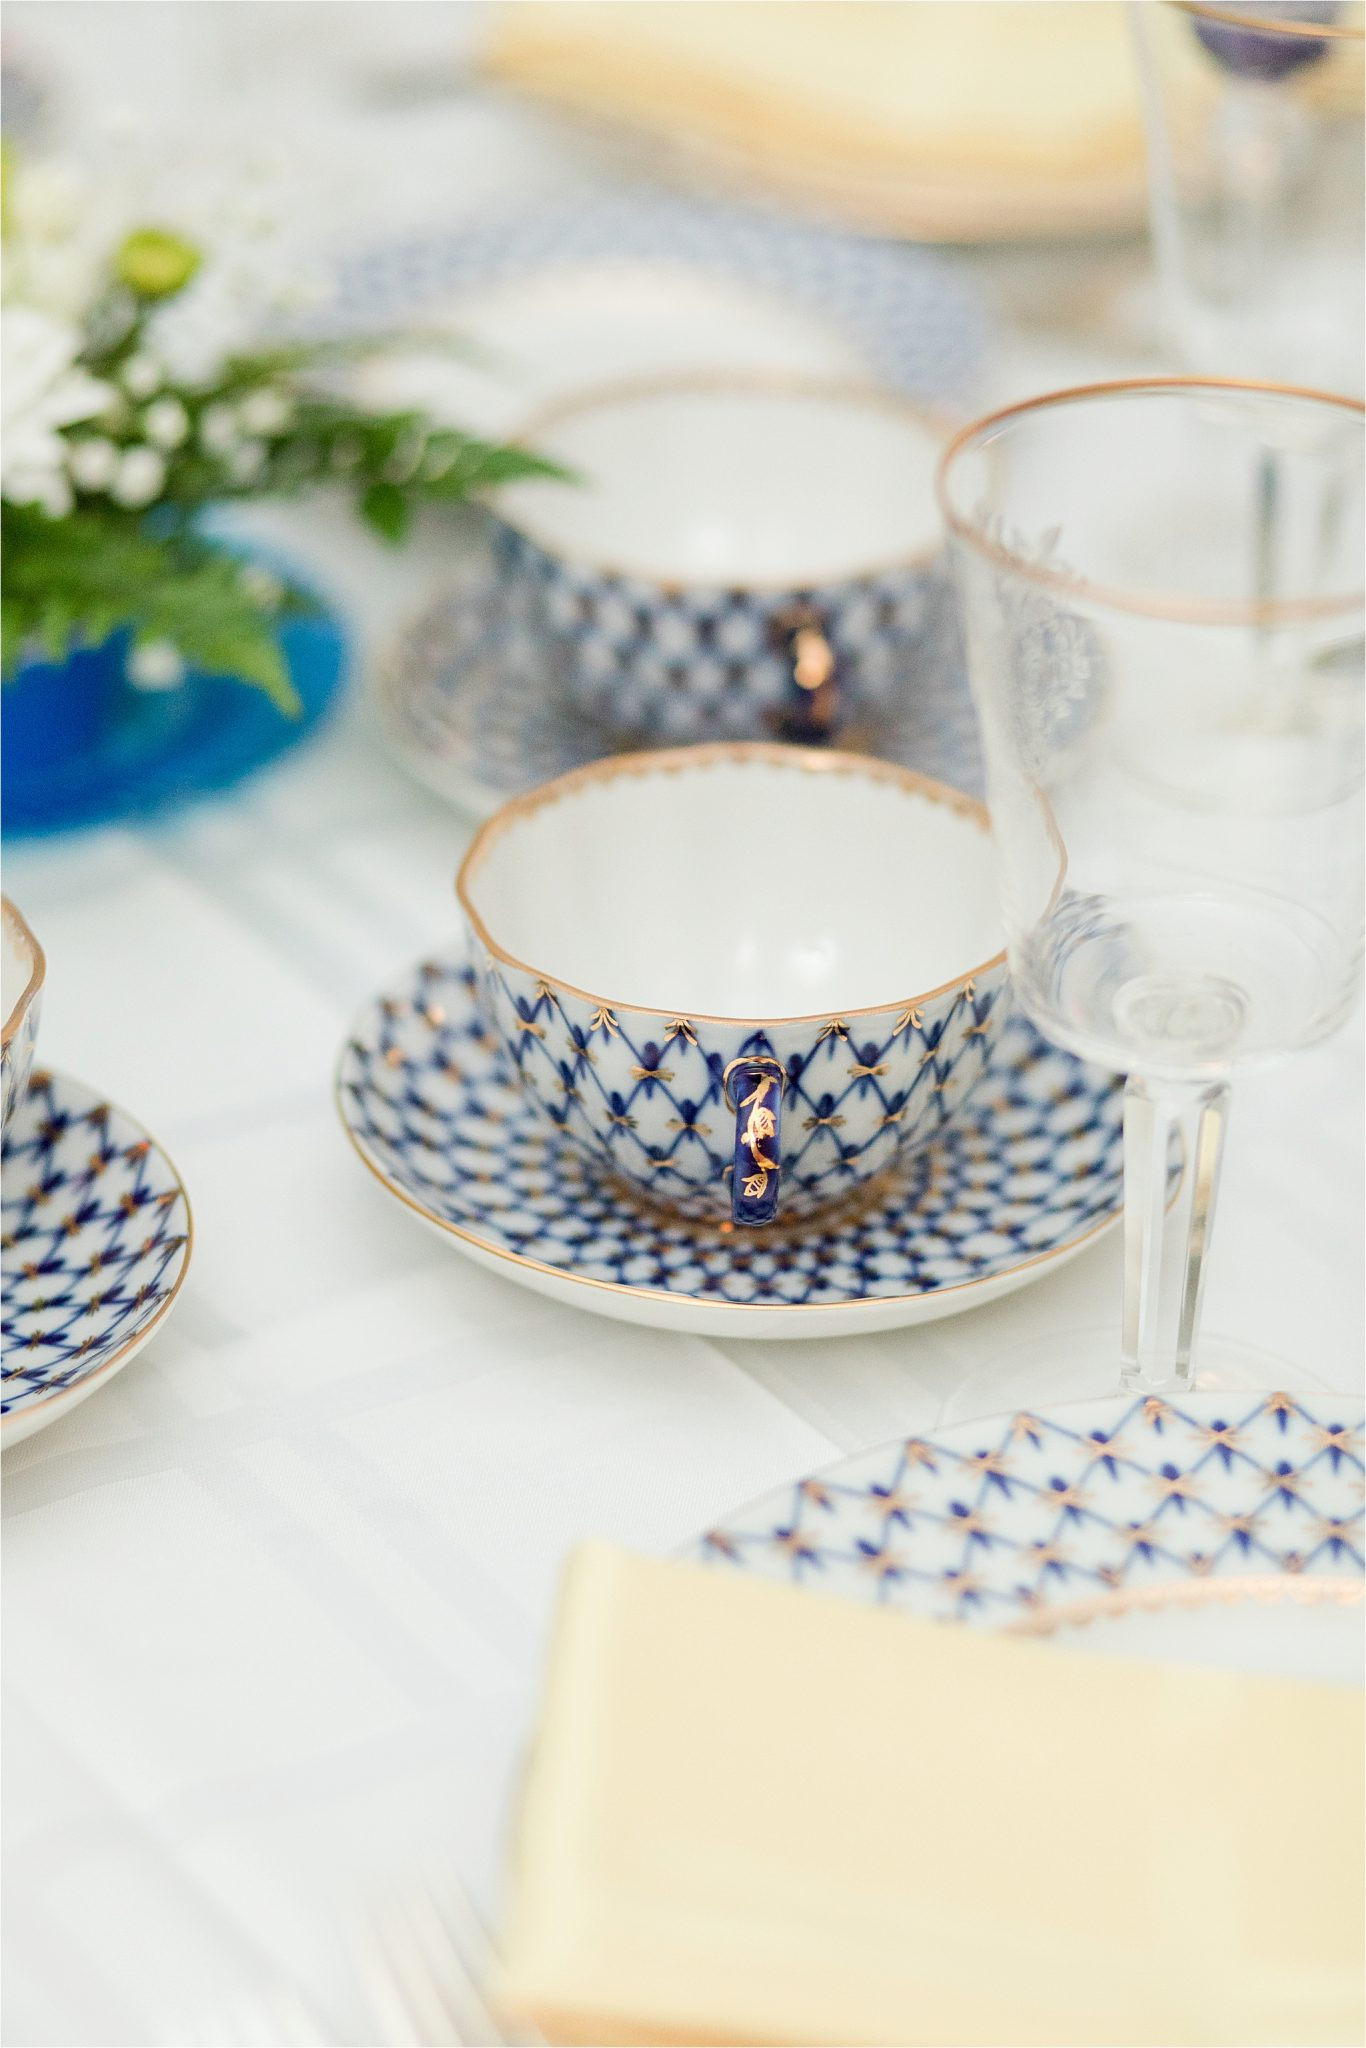 wedding china-formal place setting-navy blue china with rose gold detail-gold detail on rim-diamond patterned wedding china